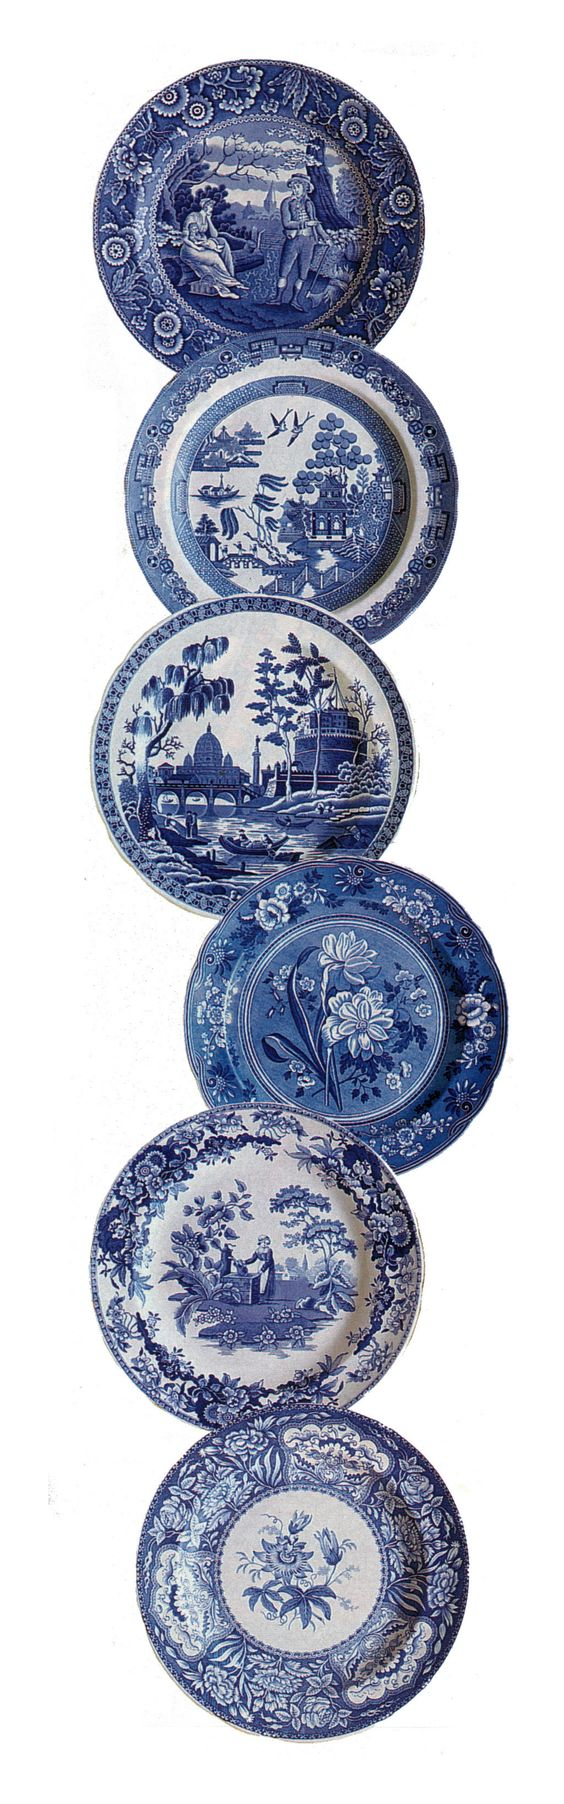 "Spode Blue Room Collection Plates - Patterns: Woodman 1815, Willow 1790, Rome 1811, Botanical 1830, Girl at the Well 1822, and Floral 1830, each 10.25"", made in England"